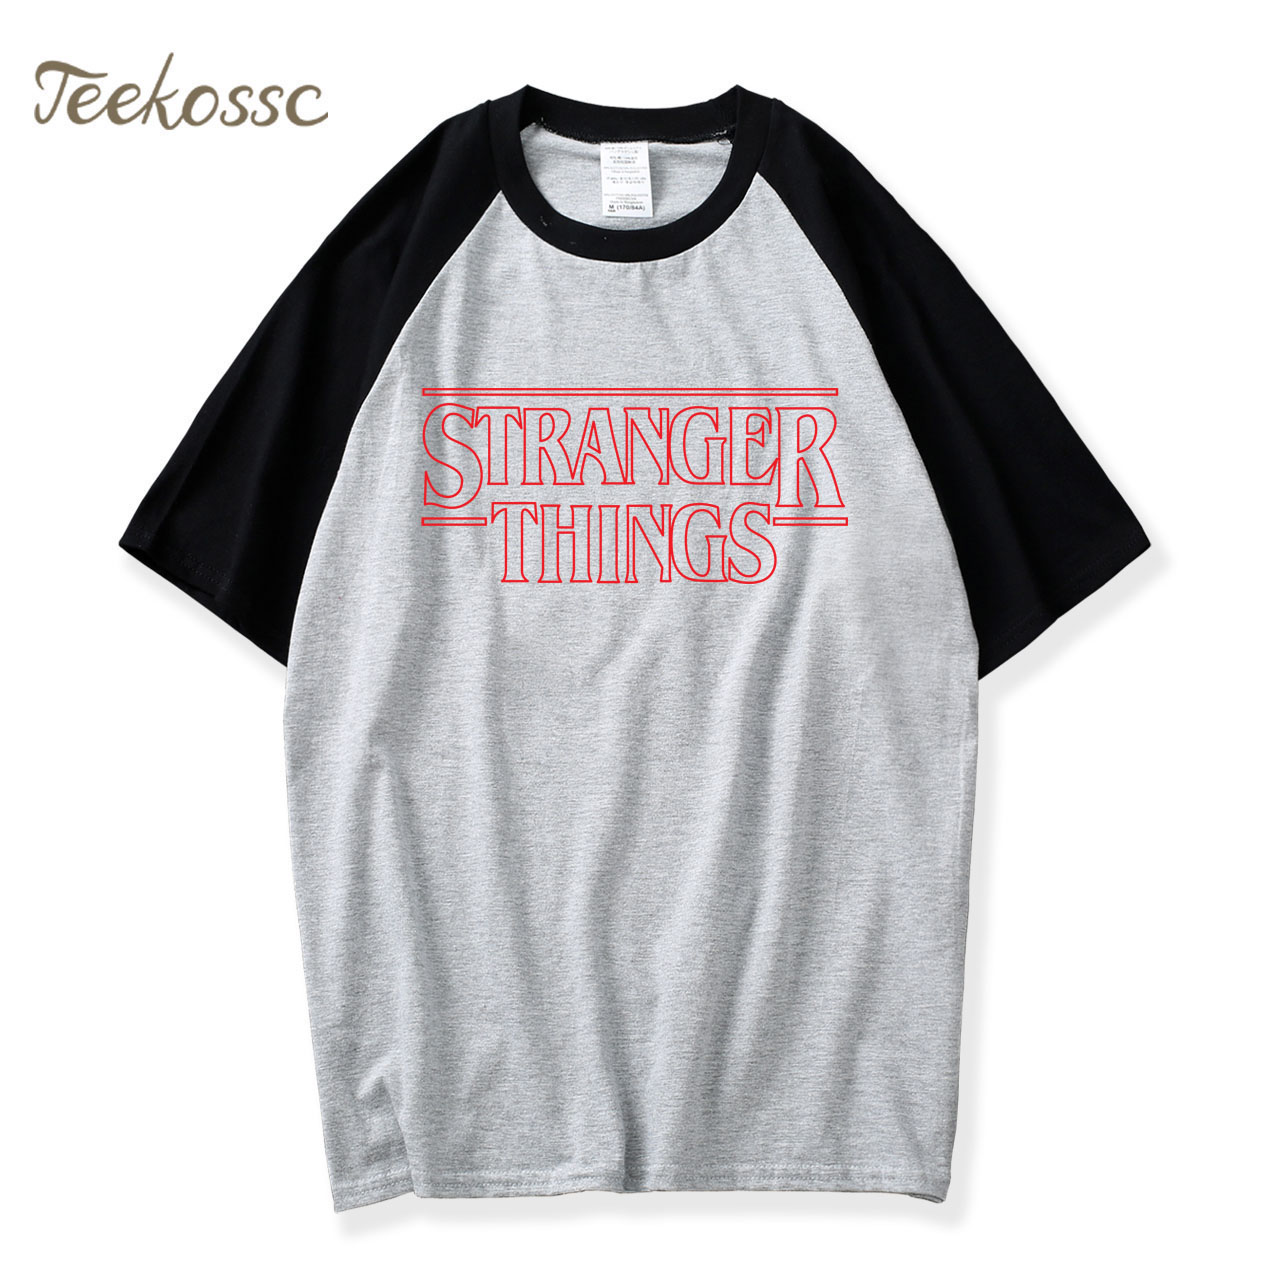 2018 New Fashion Summer TV Show Short Sleeve Black Gray T Shirt Raglan Tshirts Men Casual Camiseta Loose Tops Tee Cotton T-Shirt